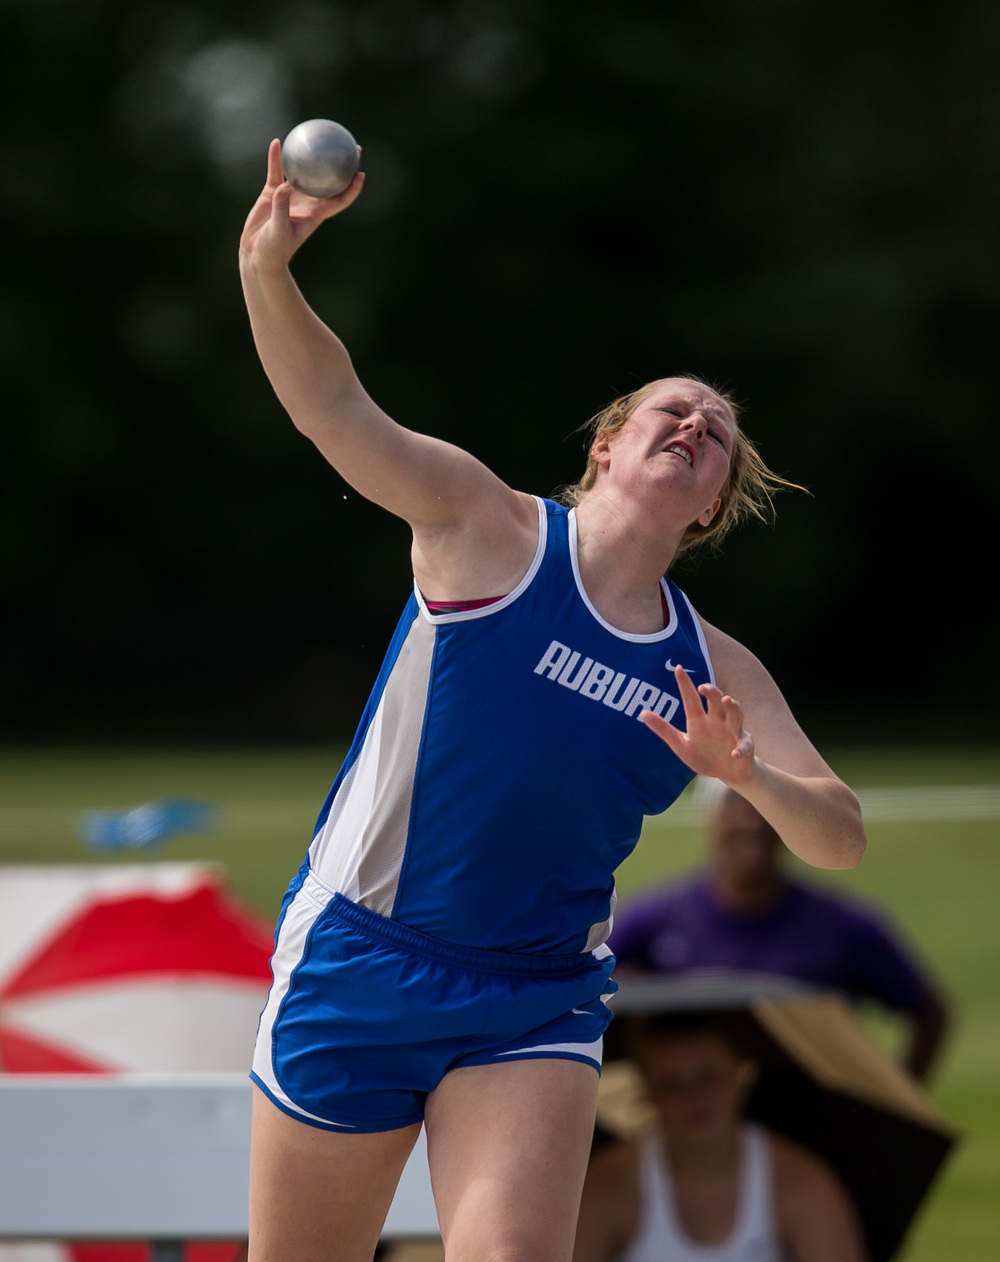 Auburn's Katie Gonterman finished 2nd in the Class 1A Shot Put with a put of 43-01.75 during the IHSA Track and Field State Finals at O'Brien Stadium, Saturday, May 23, 2015, in Charleston, Ill. Justin L. Fowler/The State Journal-Register